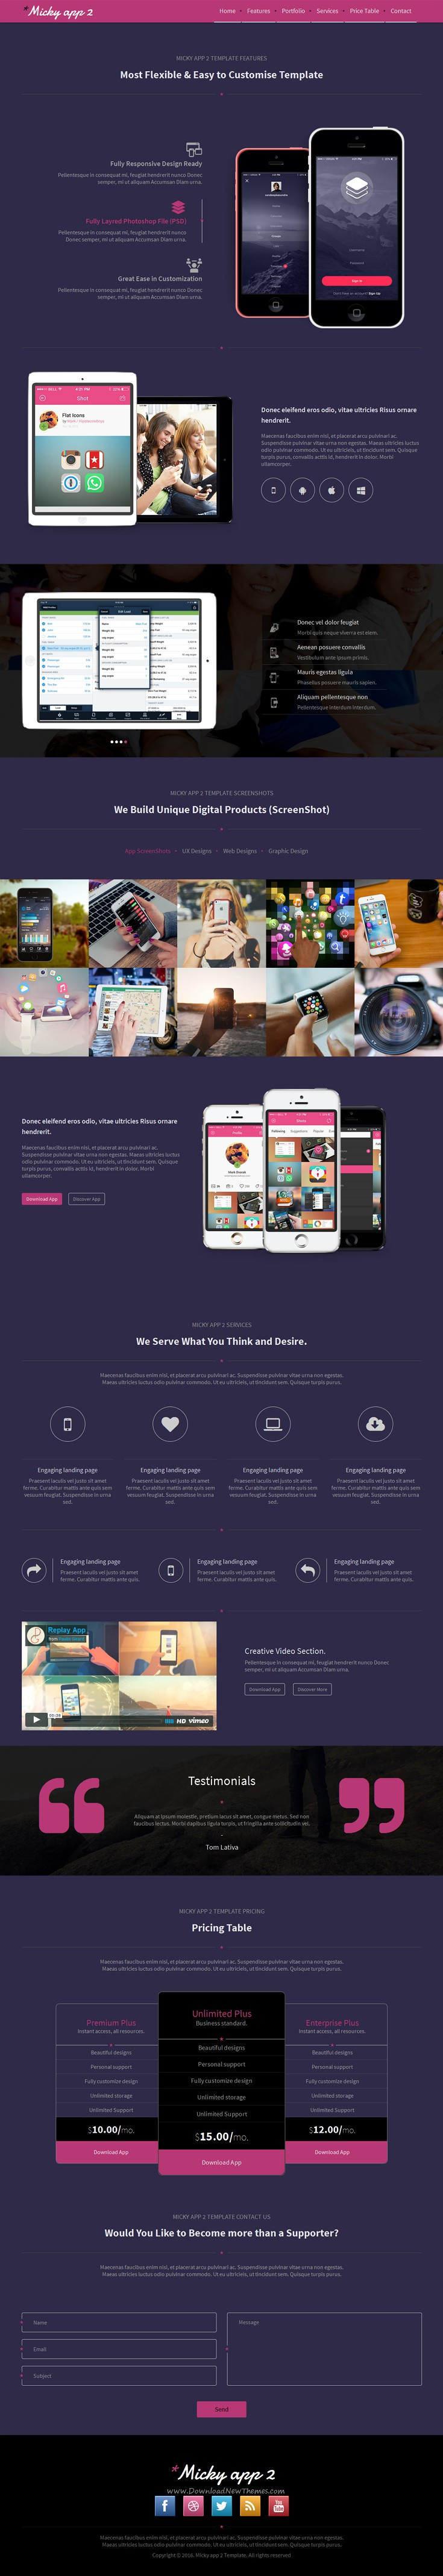 Micky, is a very Clean and Modern Designed HTML Bootstrap template for mobile app, digital agency,corporate etc. It is built with 10 #HTML pages included, and much more!